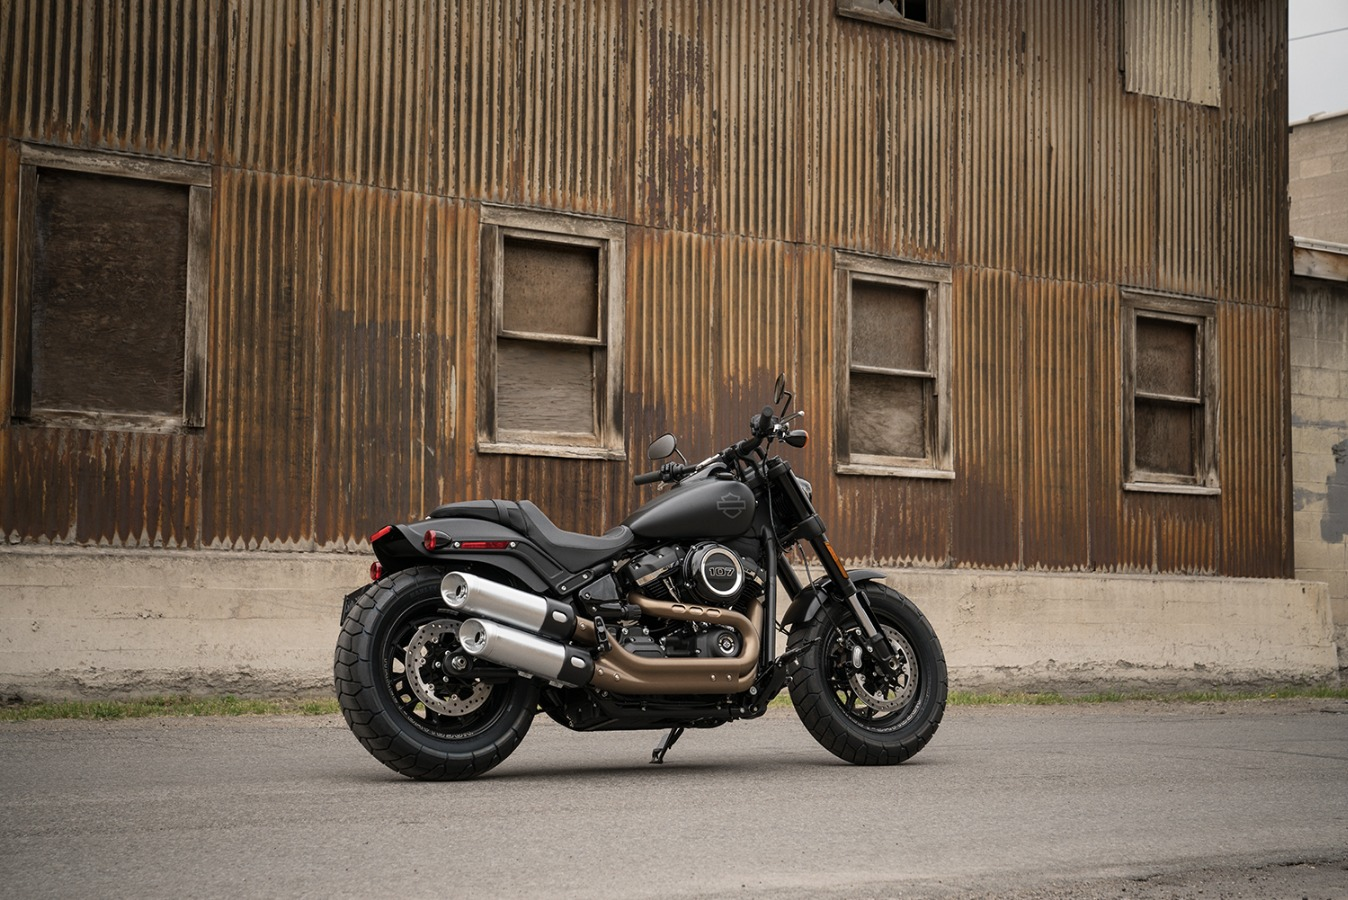 harley-davidson ravenna - FAT BOB 114 2018 SPECIAL PROMO OPEN DAY